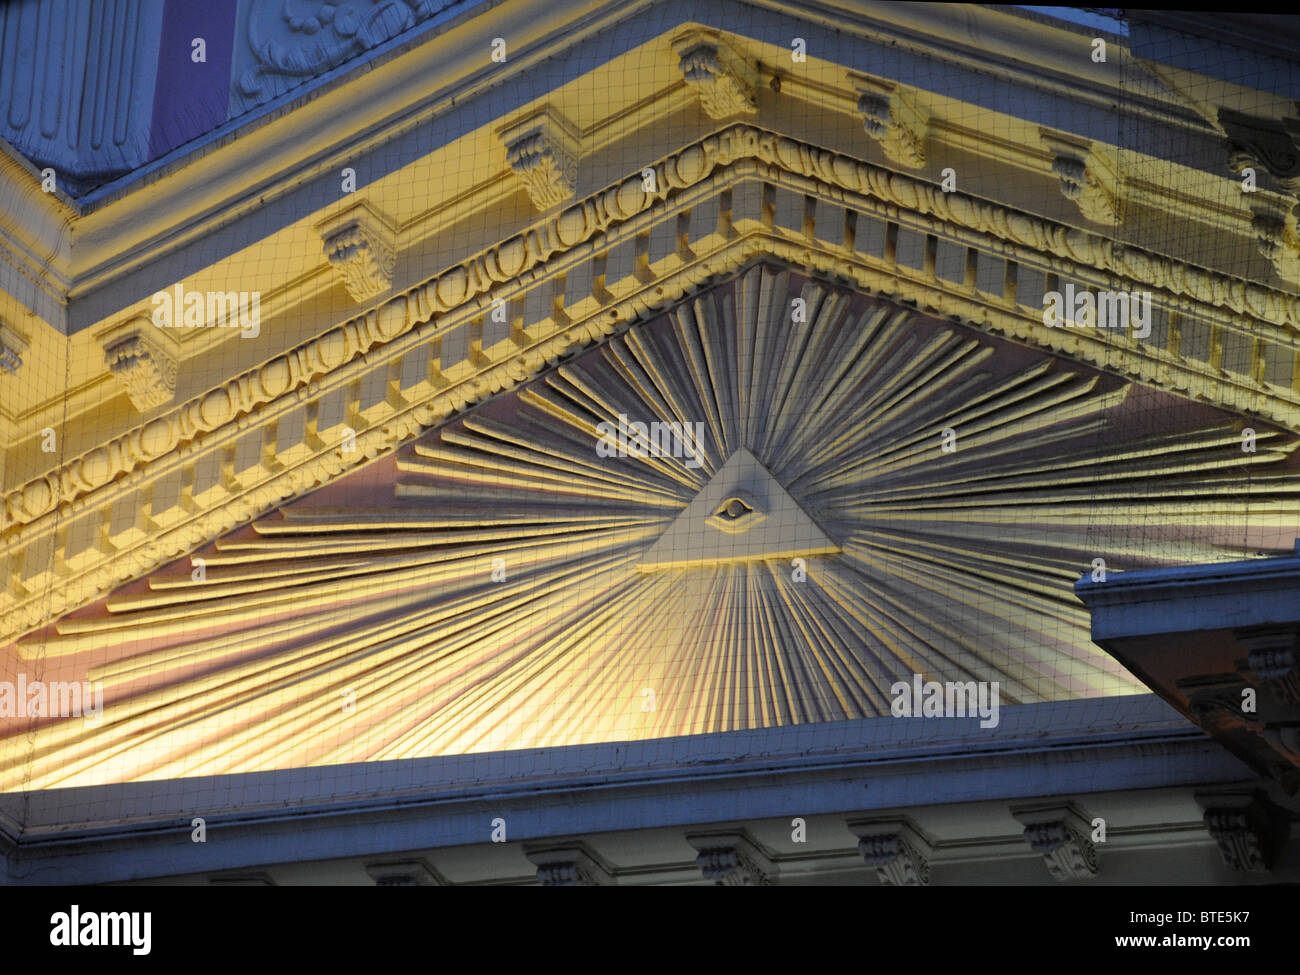 Free mason stock photos free mason stock images alamy an eye within a triangle a free mason symbol on the facade of the salta biocorpaavc